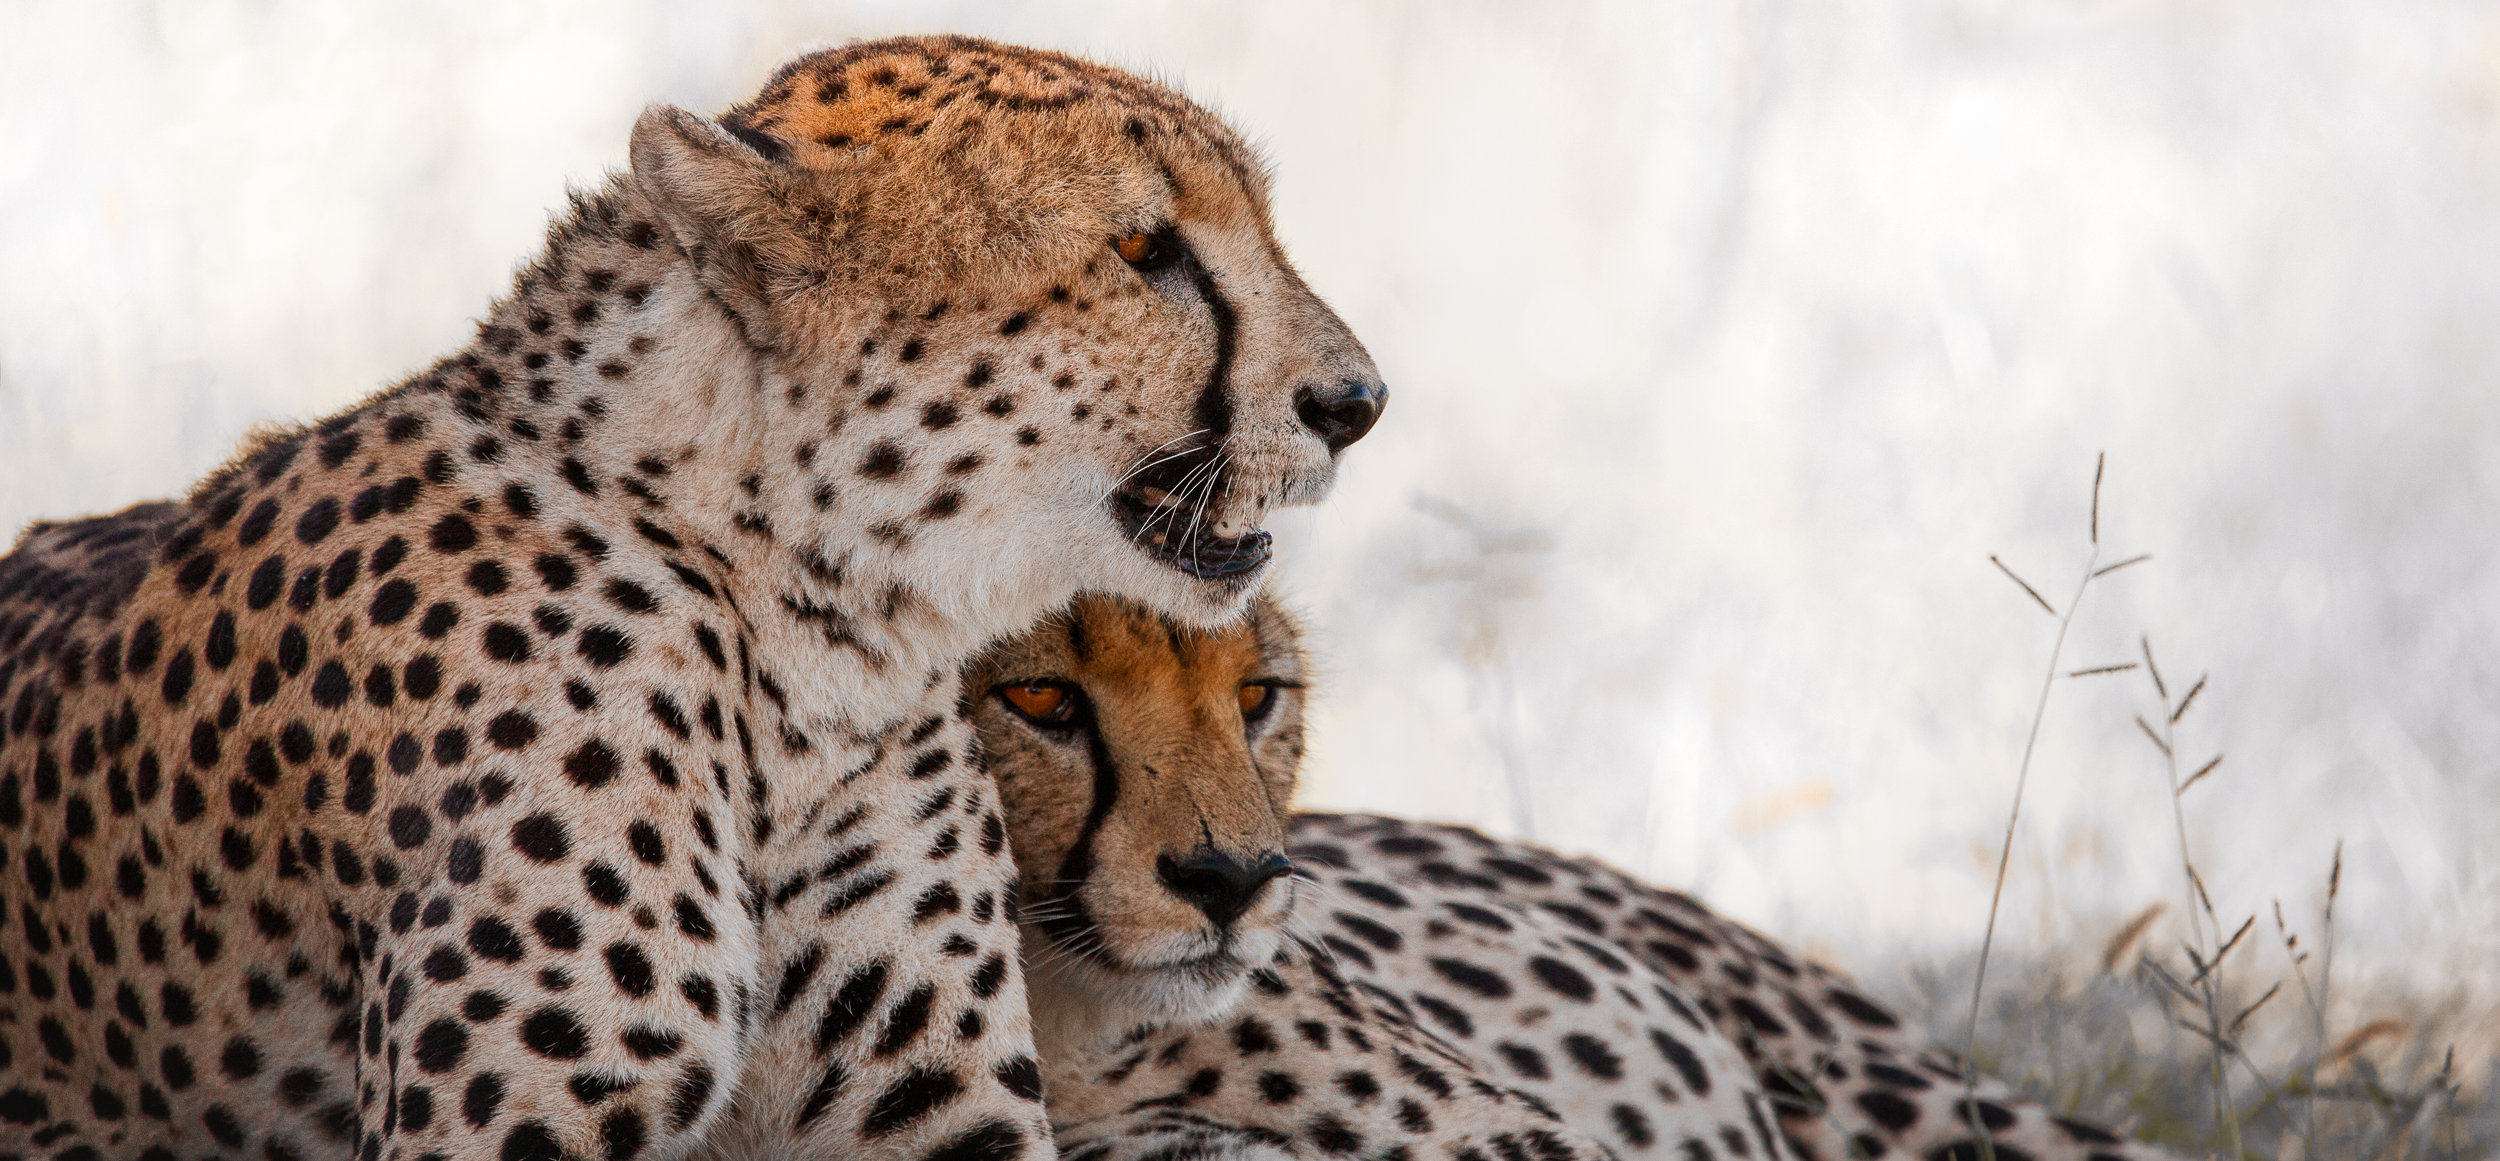 Cheetah Brothers Copyright 2